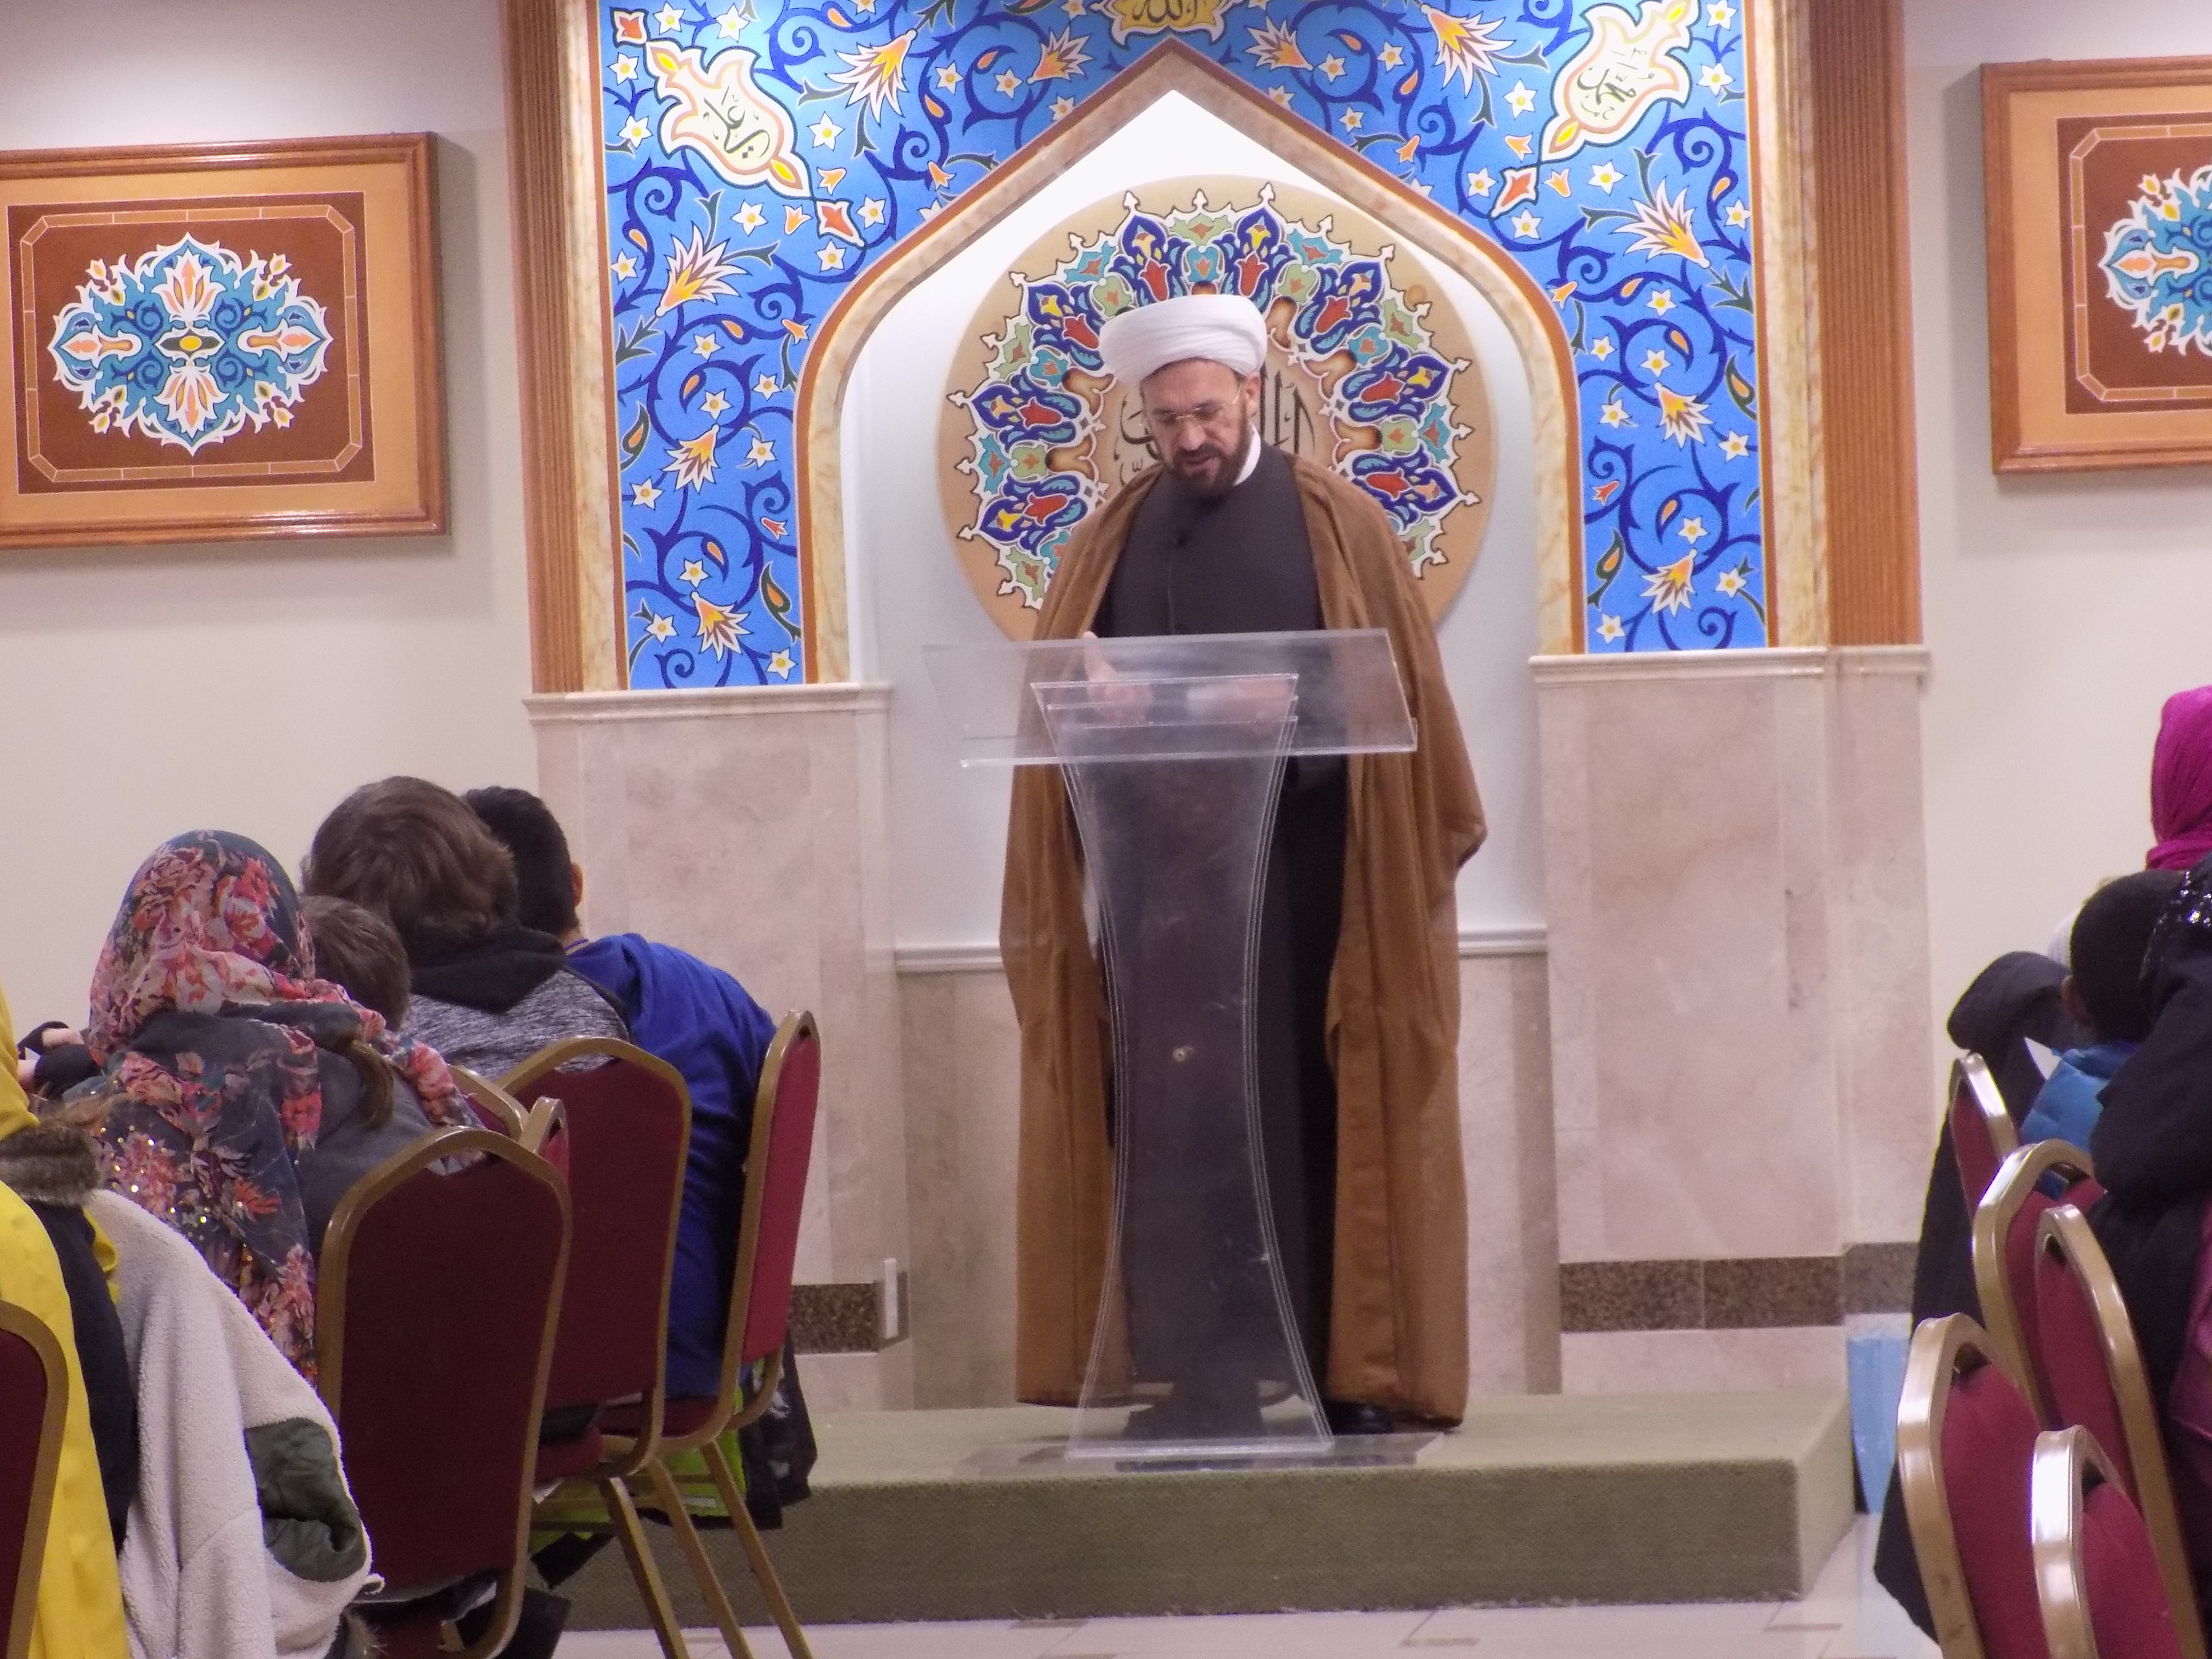 Religious Diversity Journeys Visits Islamic House of Wisdom The